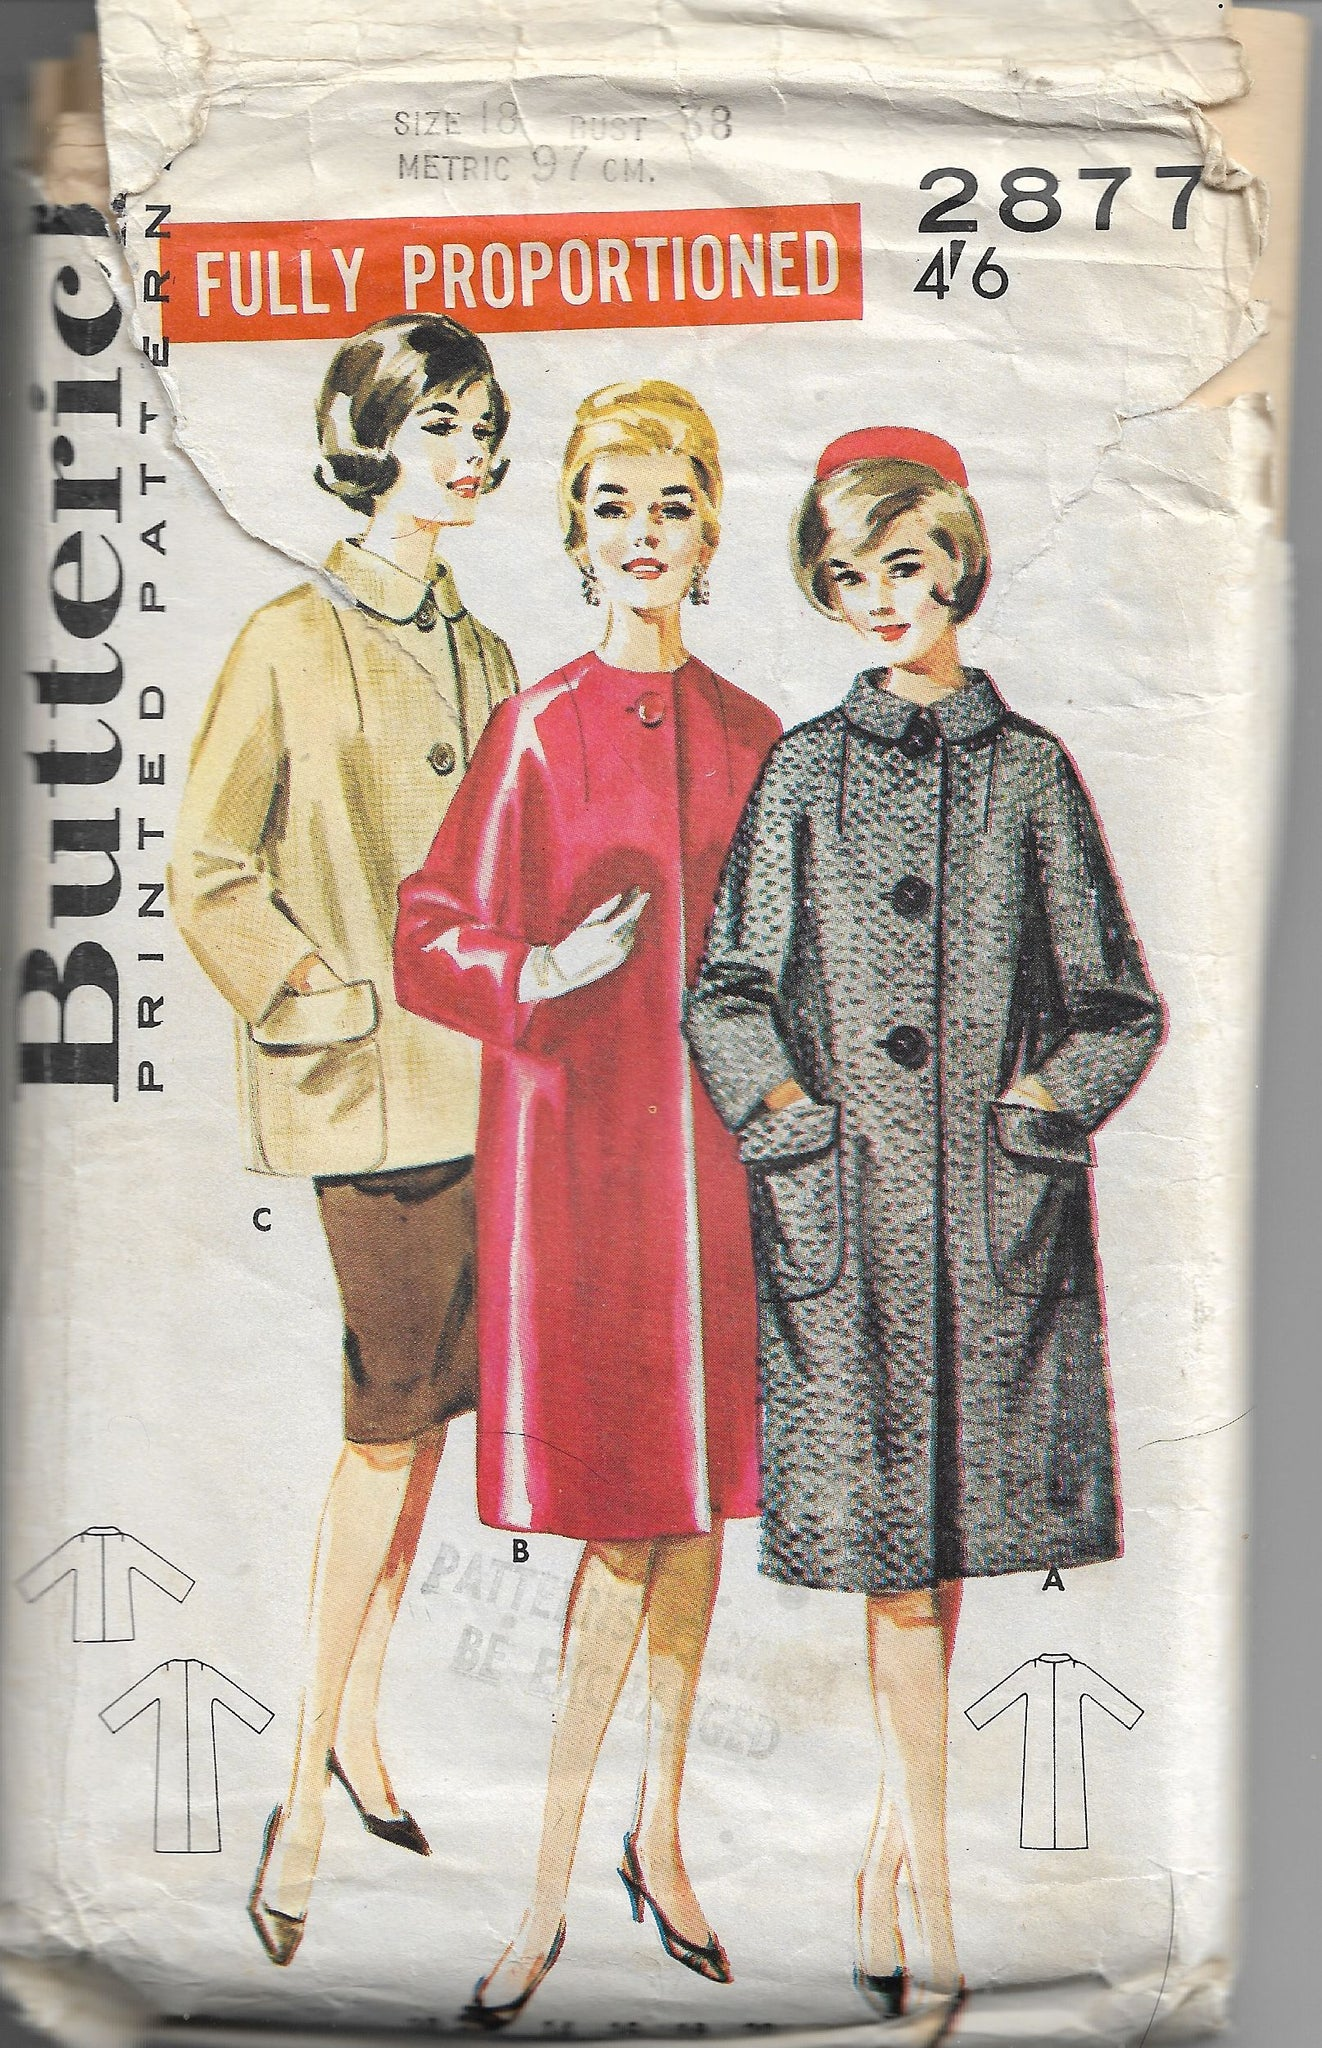 Butterick 2877 Vintage Sewing Pattern 1960s Ladies Dressy Coat - VintageStitching - Vintage Sewing Patterns